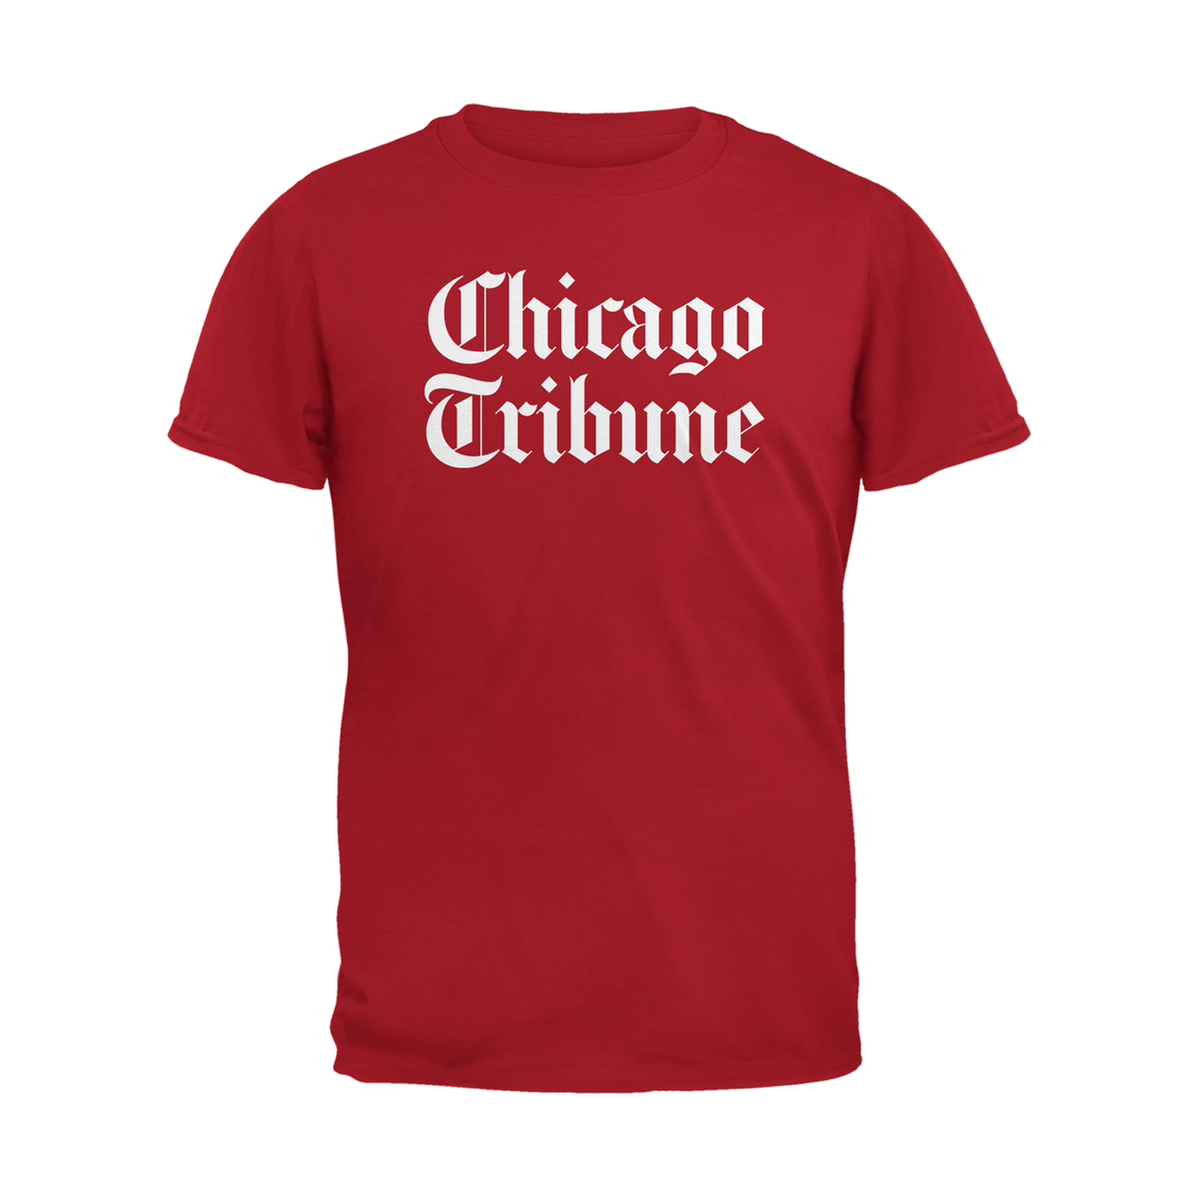 Chicago Tribune Stacked Logo Red Unisex Adult T-Shirt